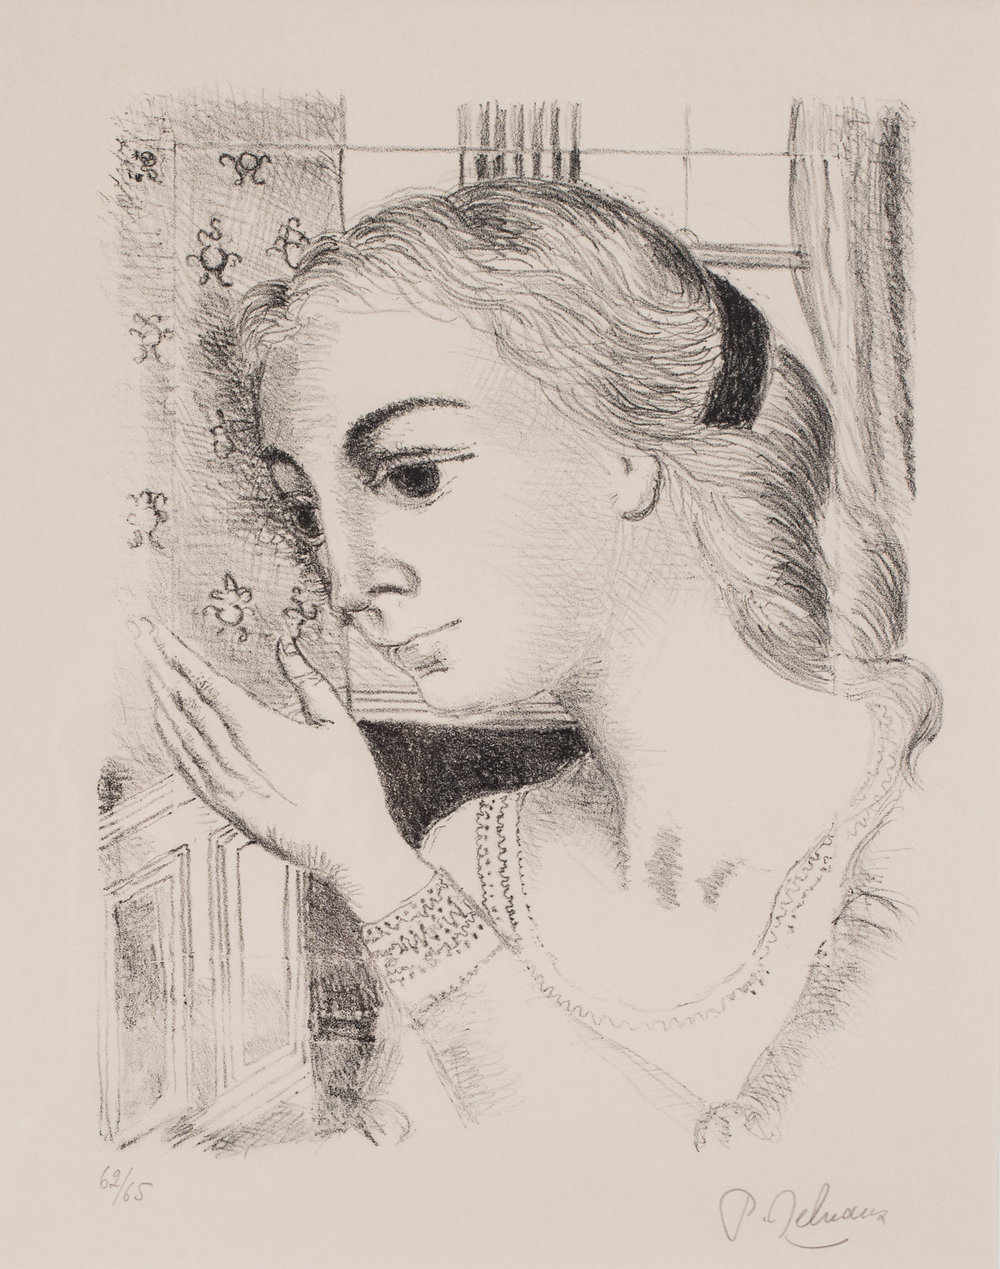 Paul Delvaux (Belgian, 1897 – 1994)     Lady with a candle, 1966    Lithograph  Signed, dated and numbered 62/55 in pencil   37.5 x 30.2 cm.   Price: £1,900